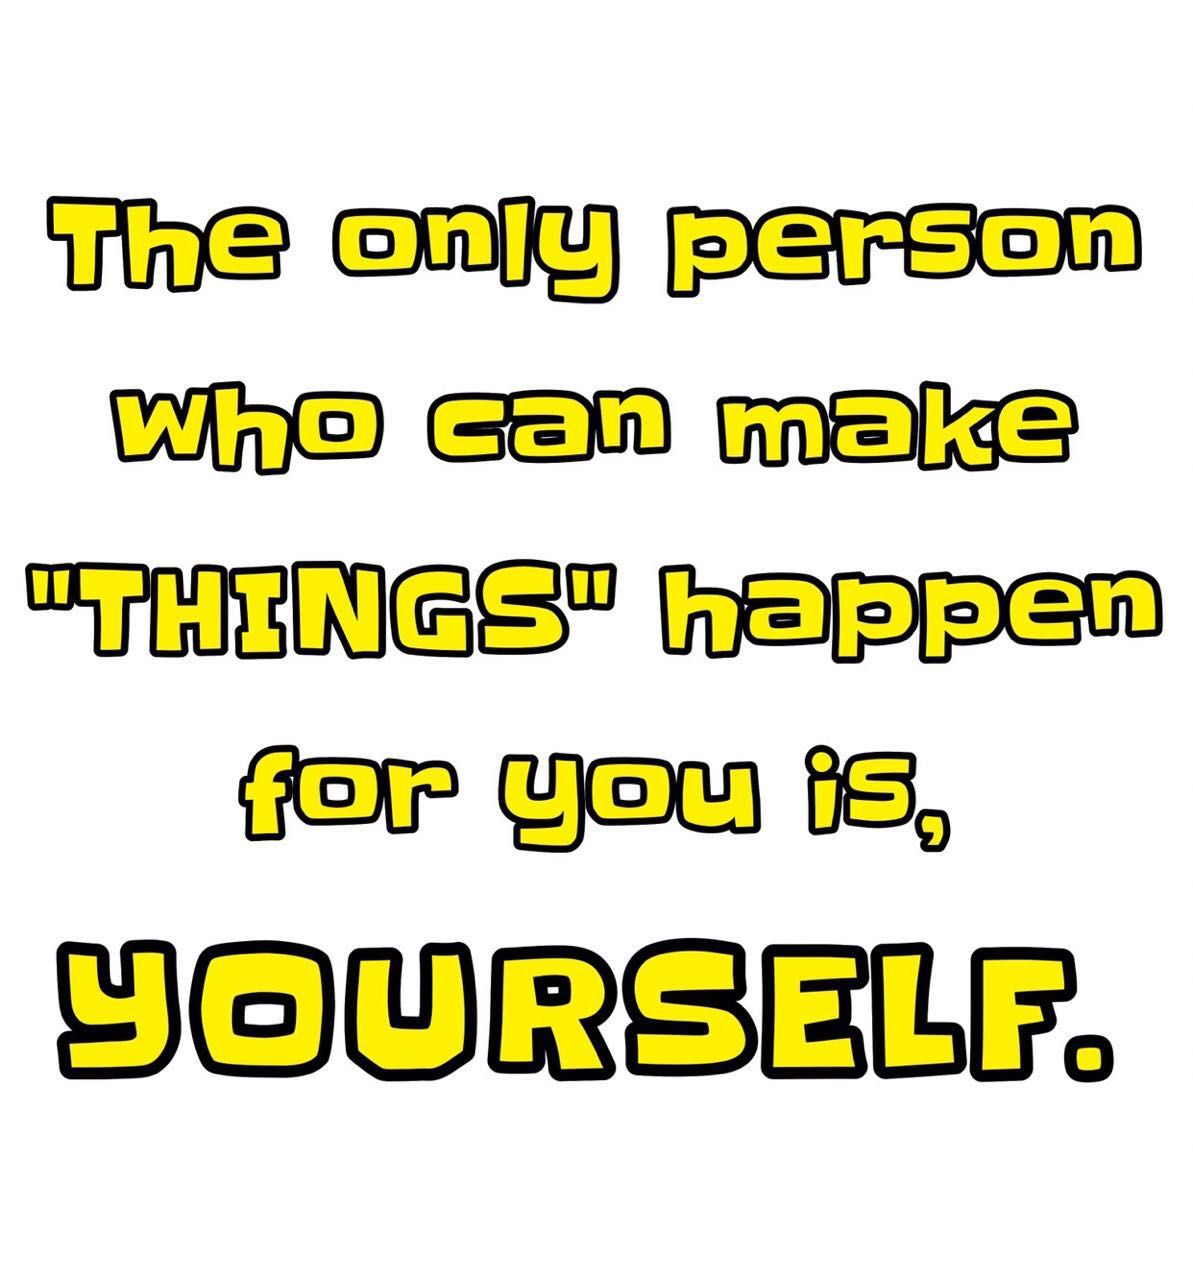 You're the only one! So start!